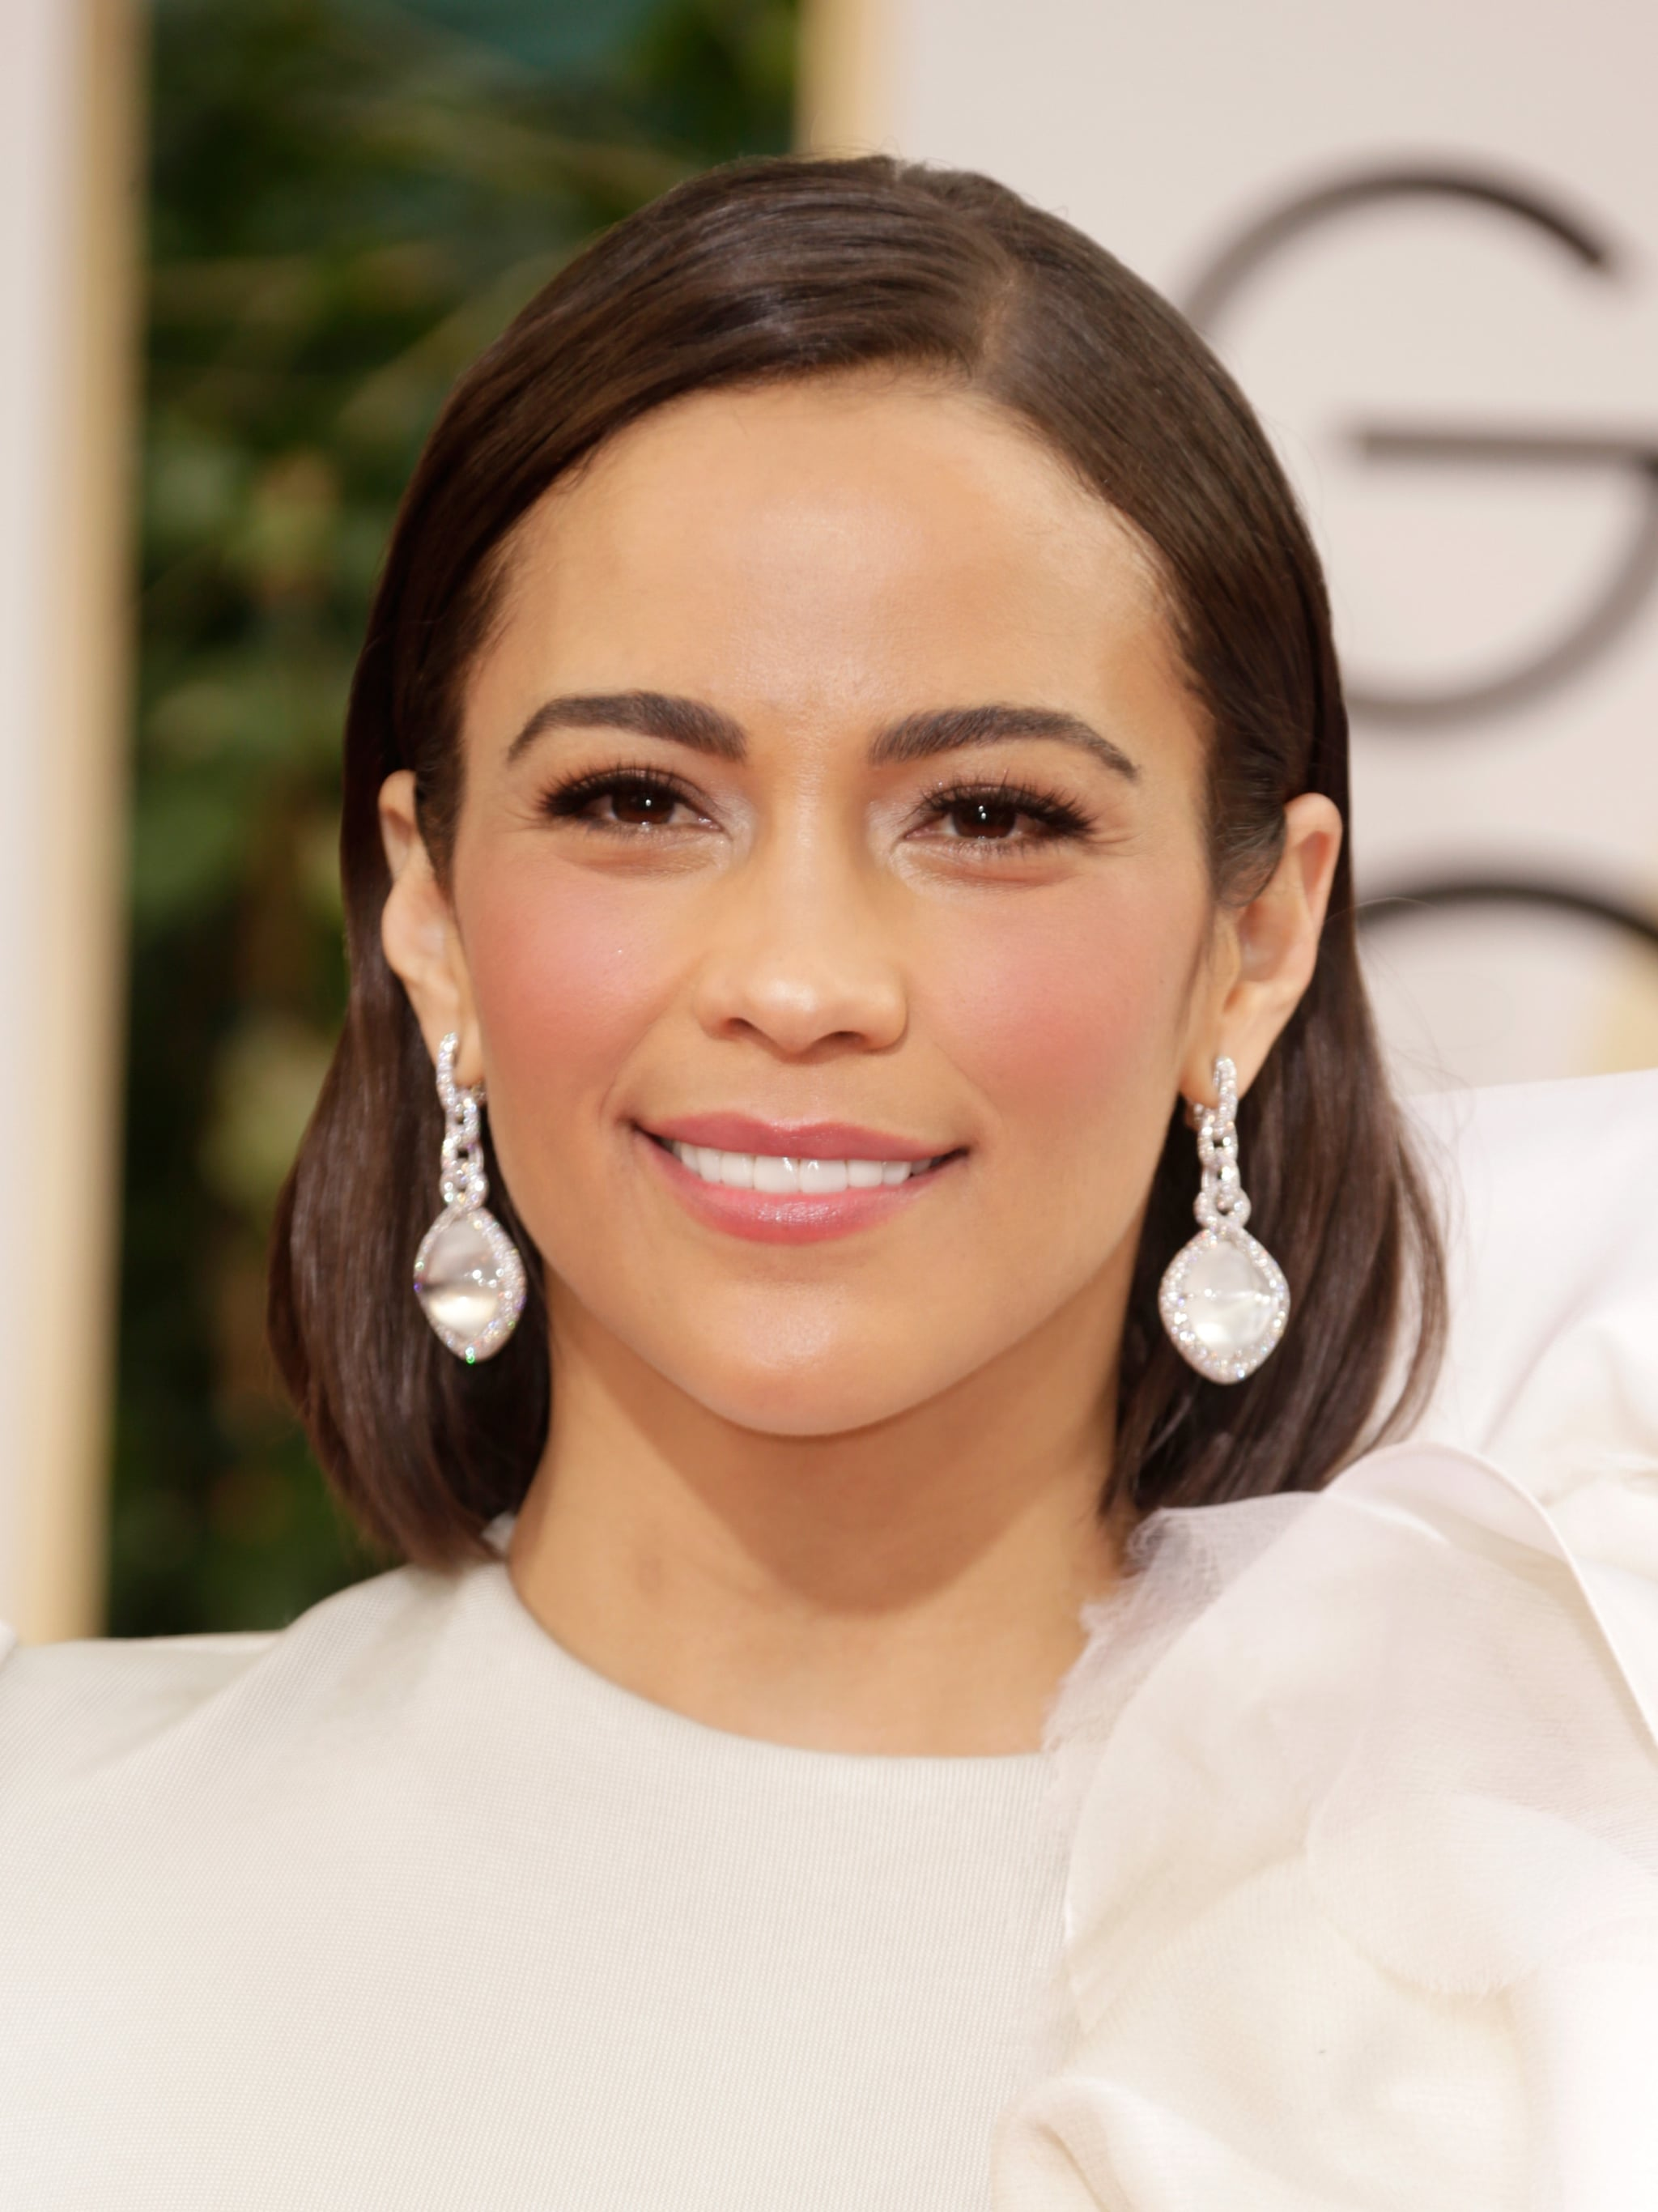 Paula Patton's David Yurman High Jewelry white diamond and moonstone earrings were a perfect match for her creamy white gown.